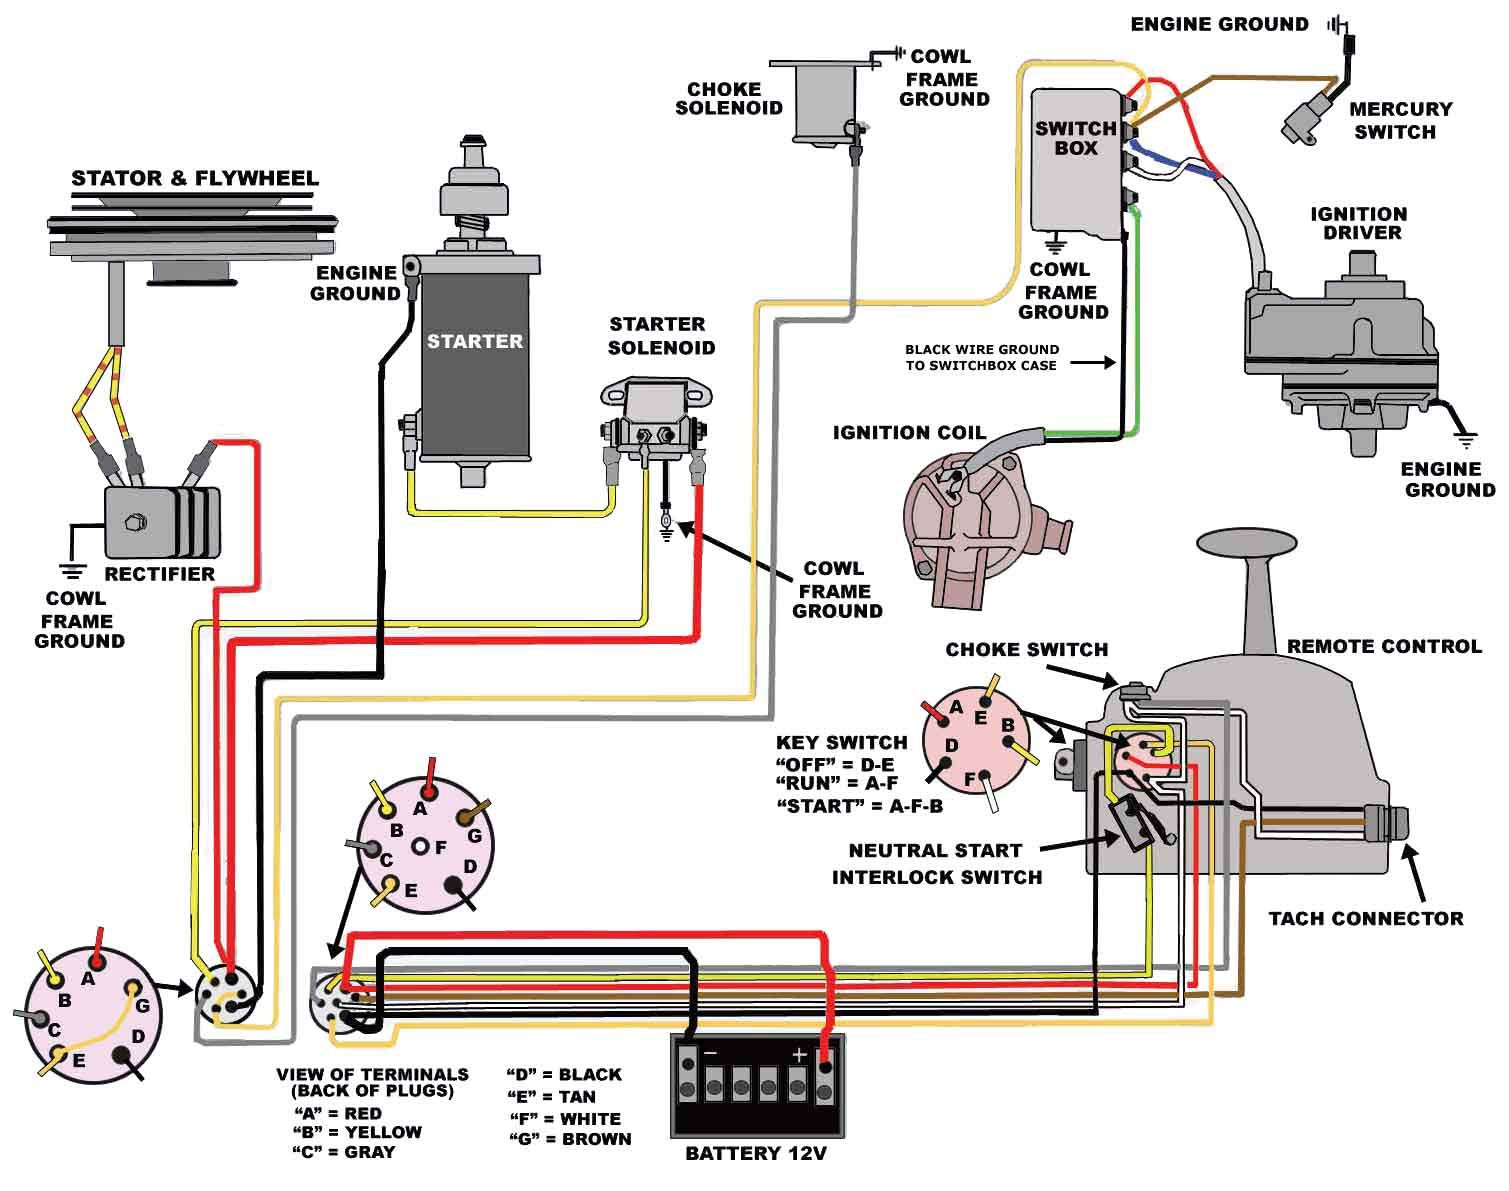 13cfb2d962bcd0c03103625817b7d51d mercury outboard wiring diagram diagram pinterest mercury  at creativeand.co